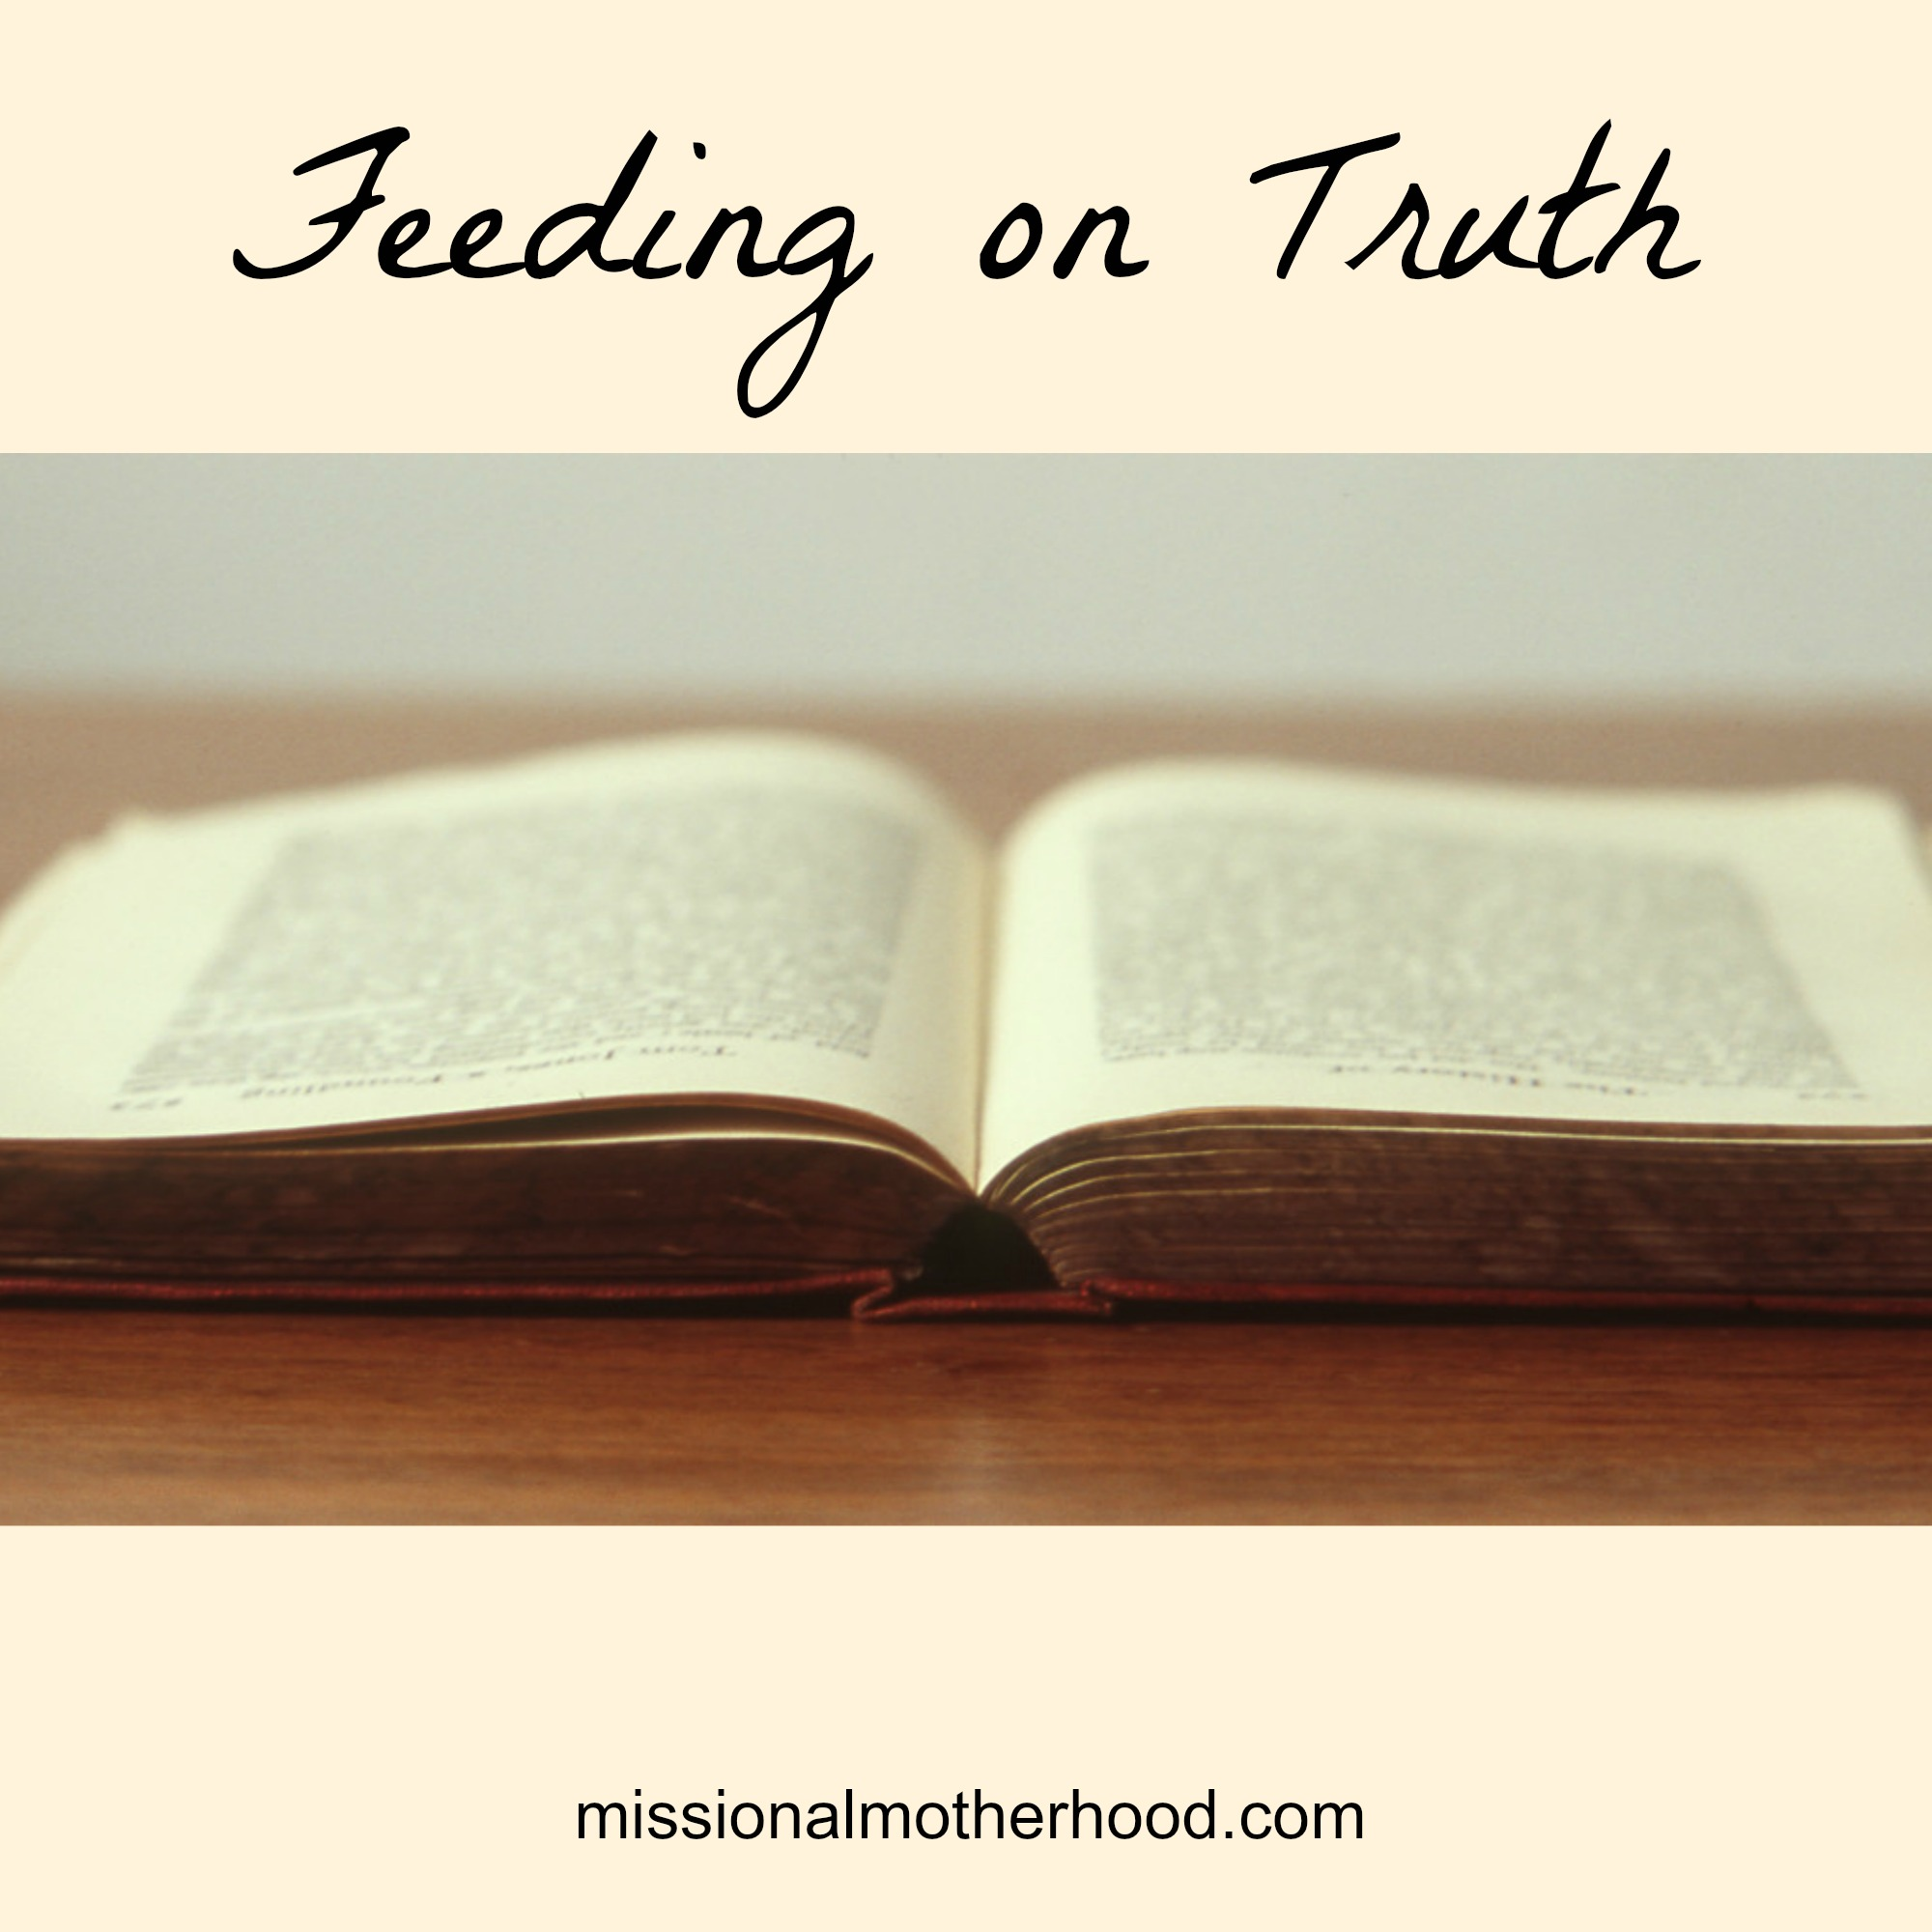 Feeding on Truth